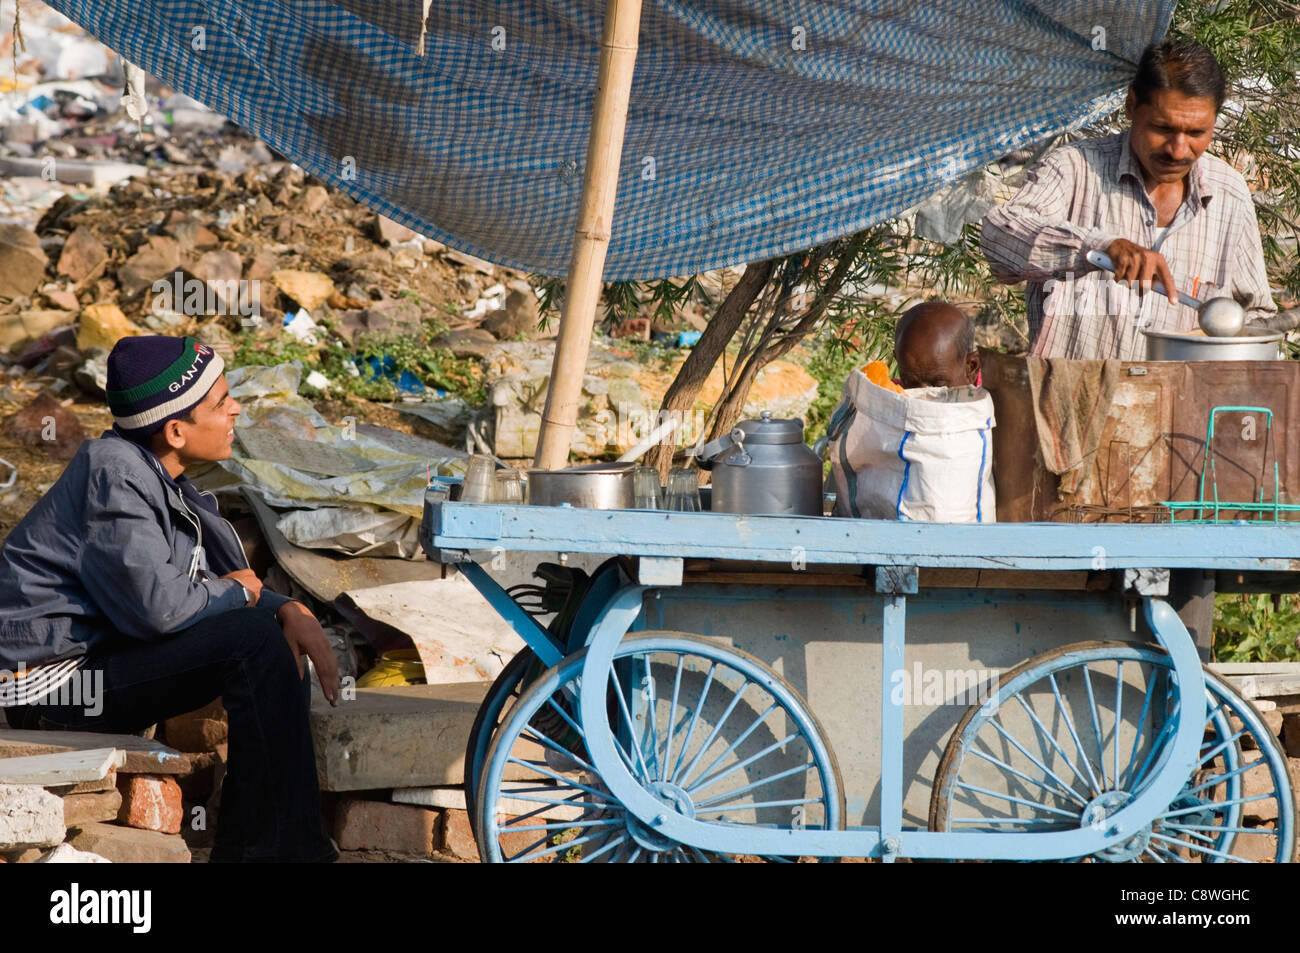 A roadside food stall in Bhopal, India - Stock Image